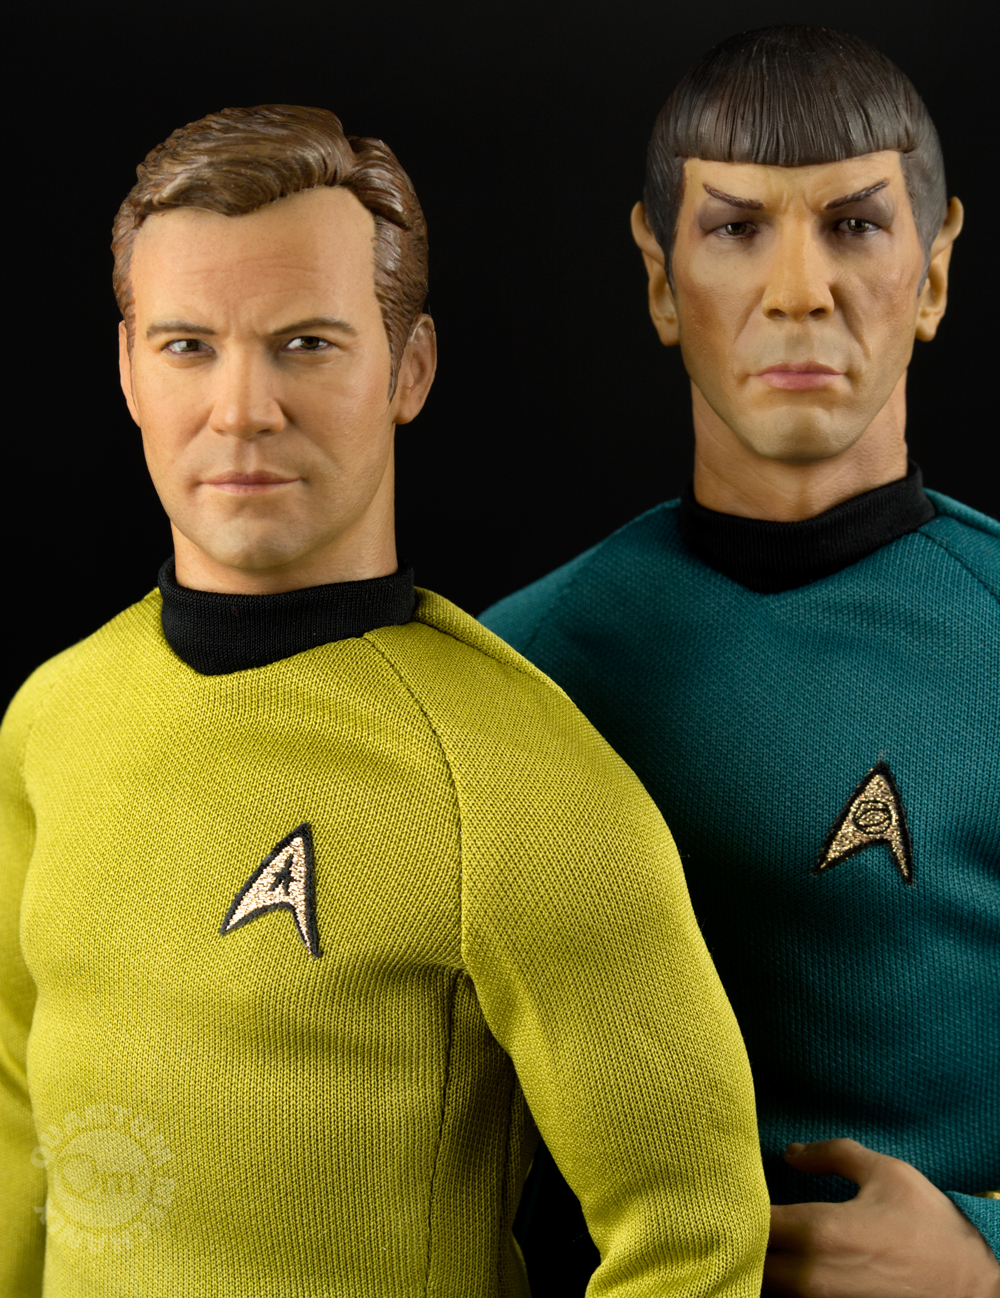 QMX-Star-Trek-Captain-Kirk-and-Spock-2